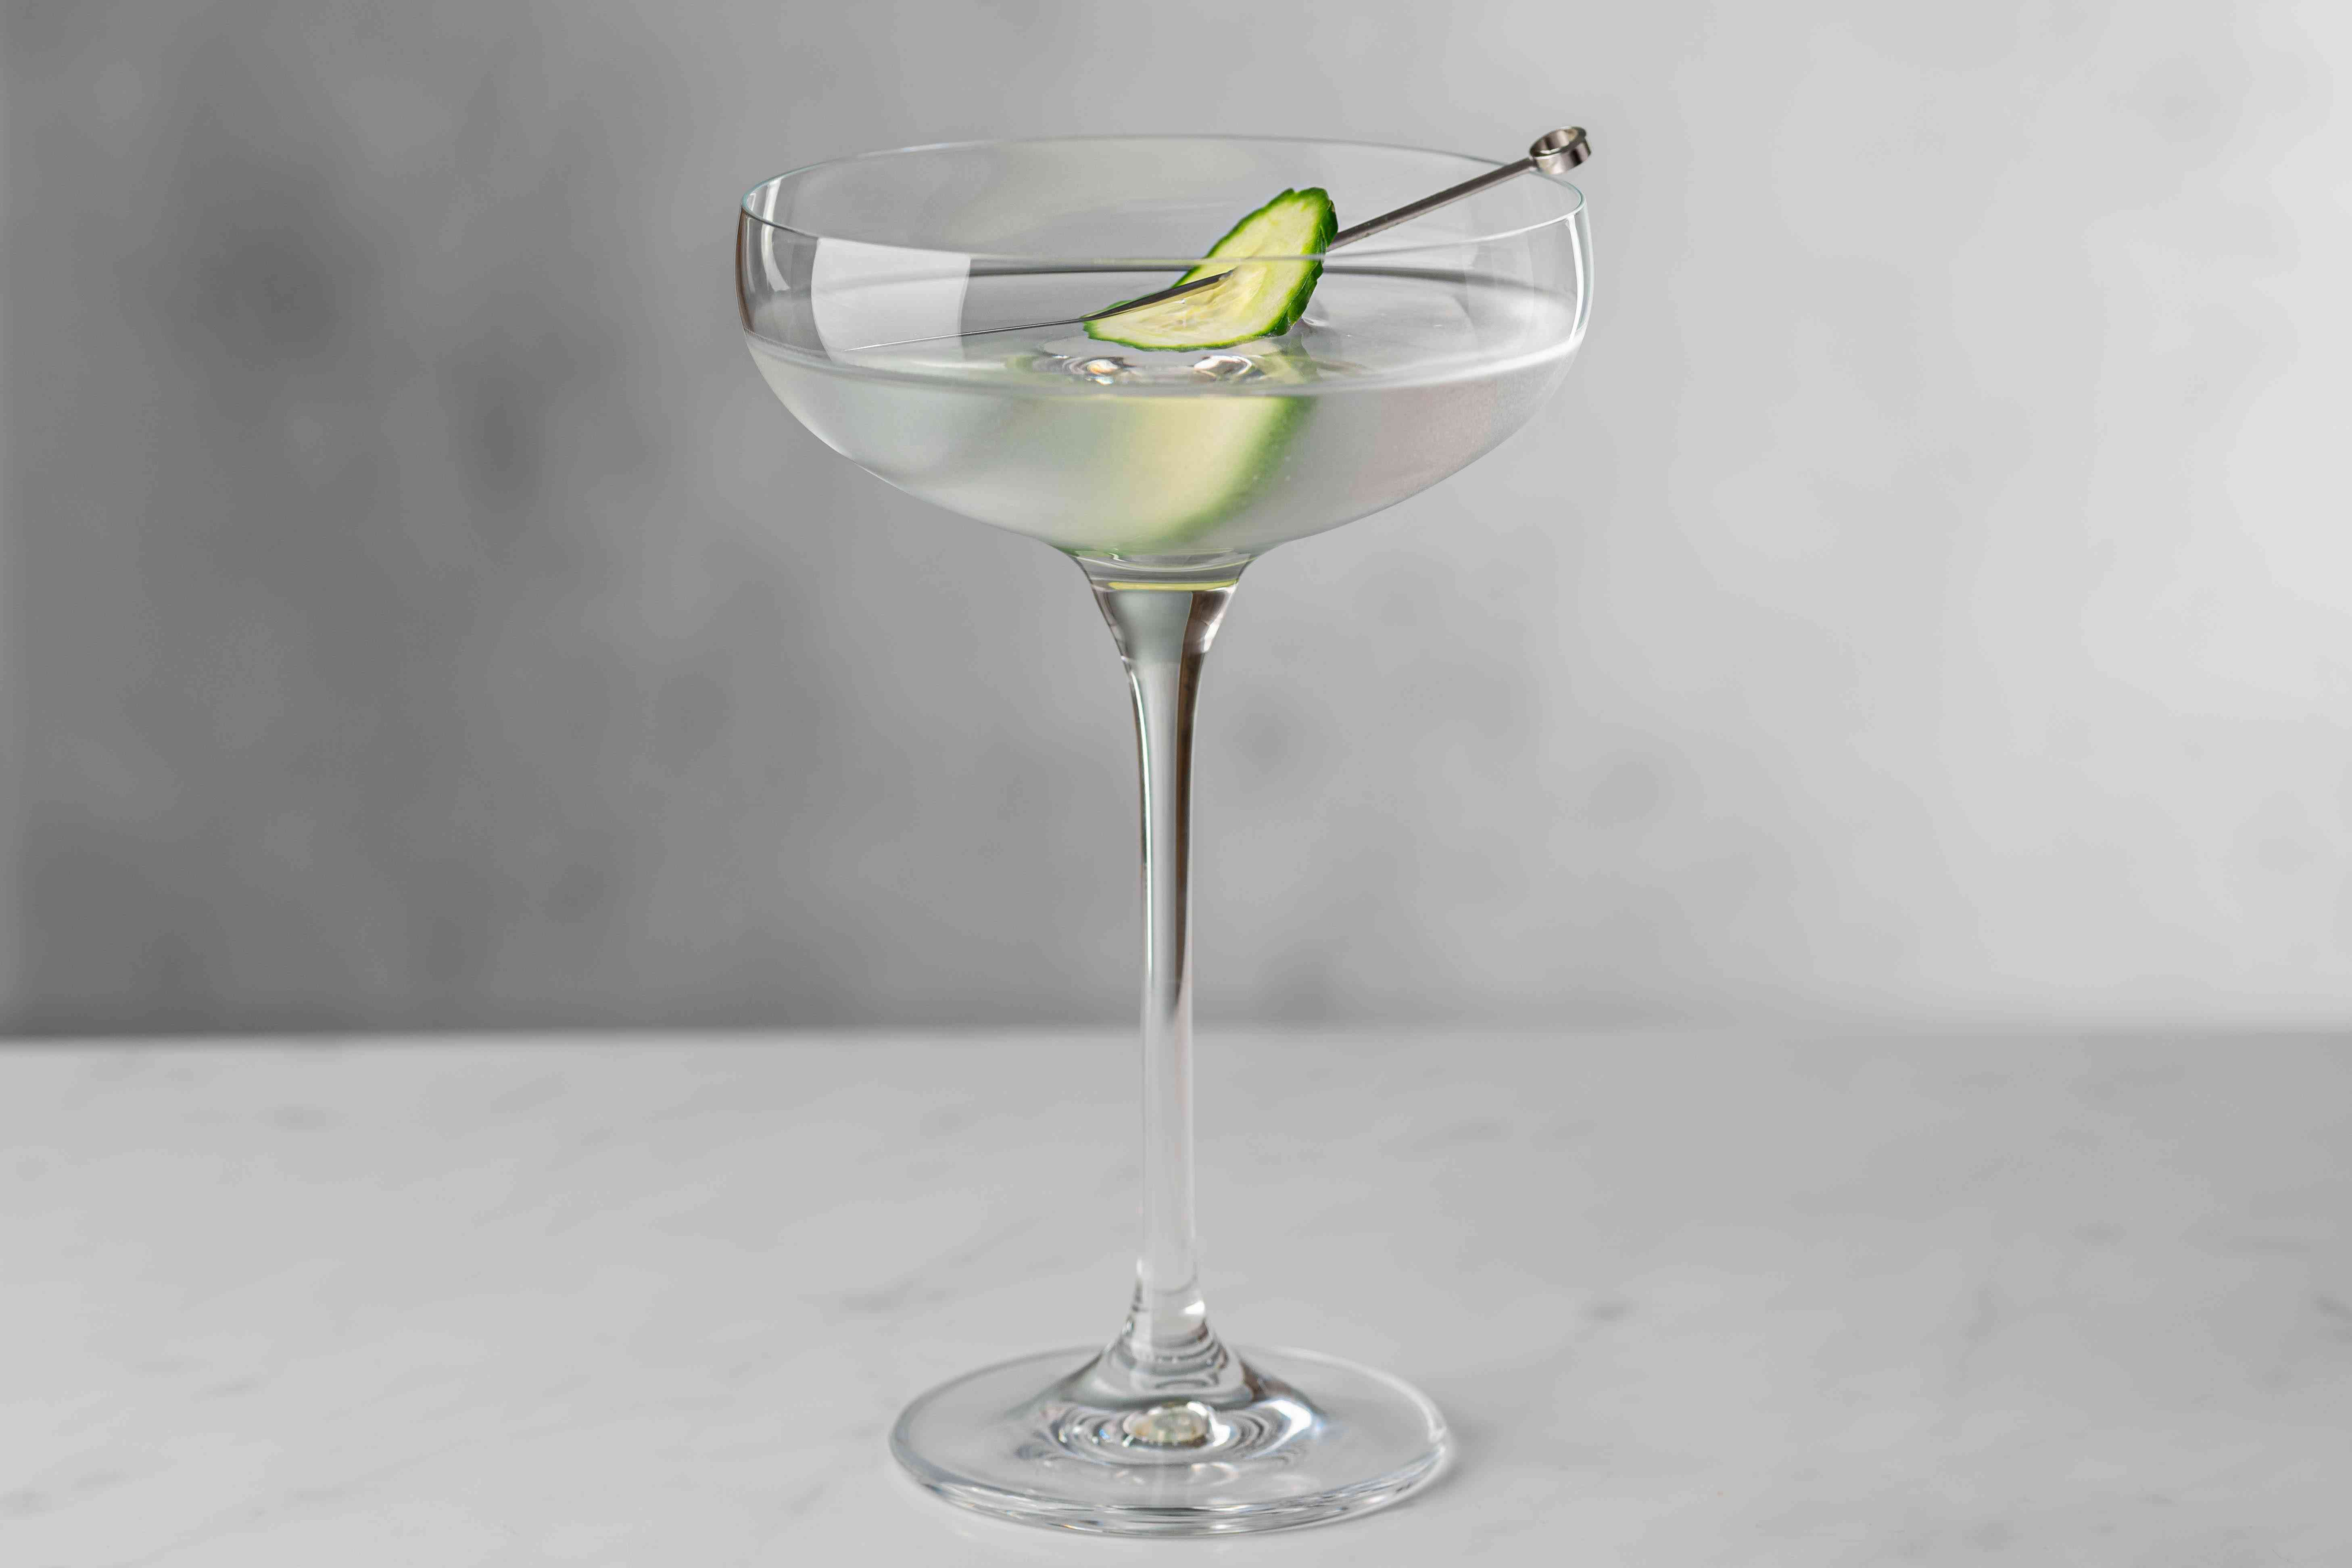 Garnish the saketini with an olive or slice of cucumber